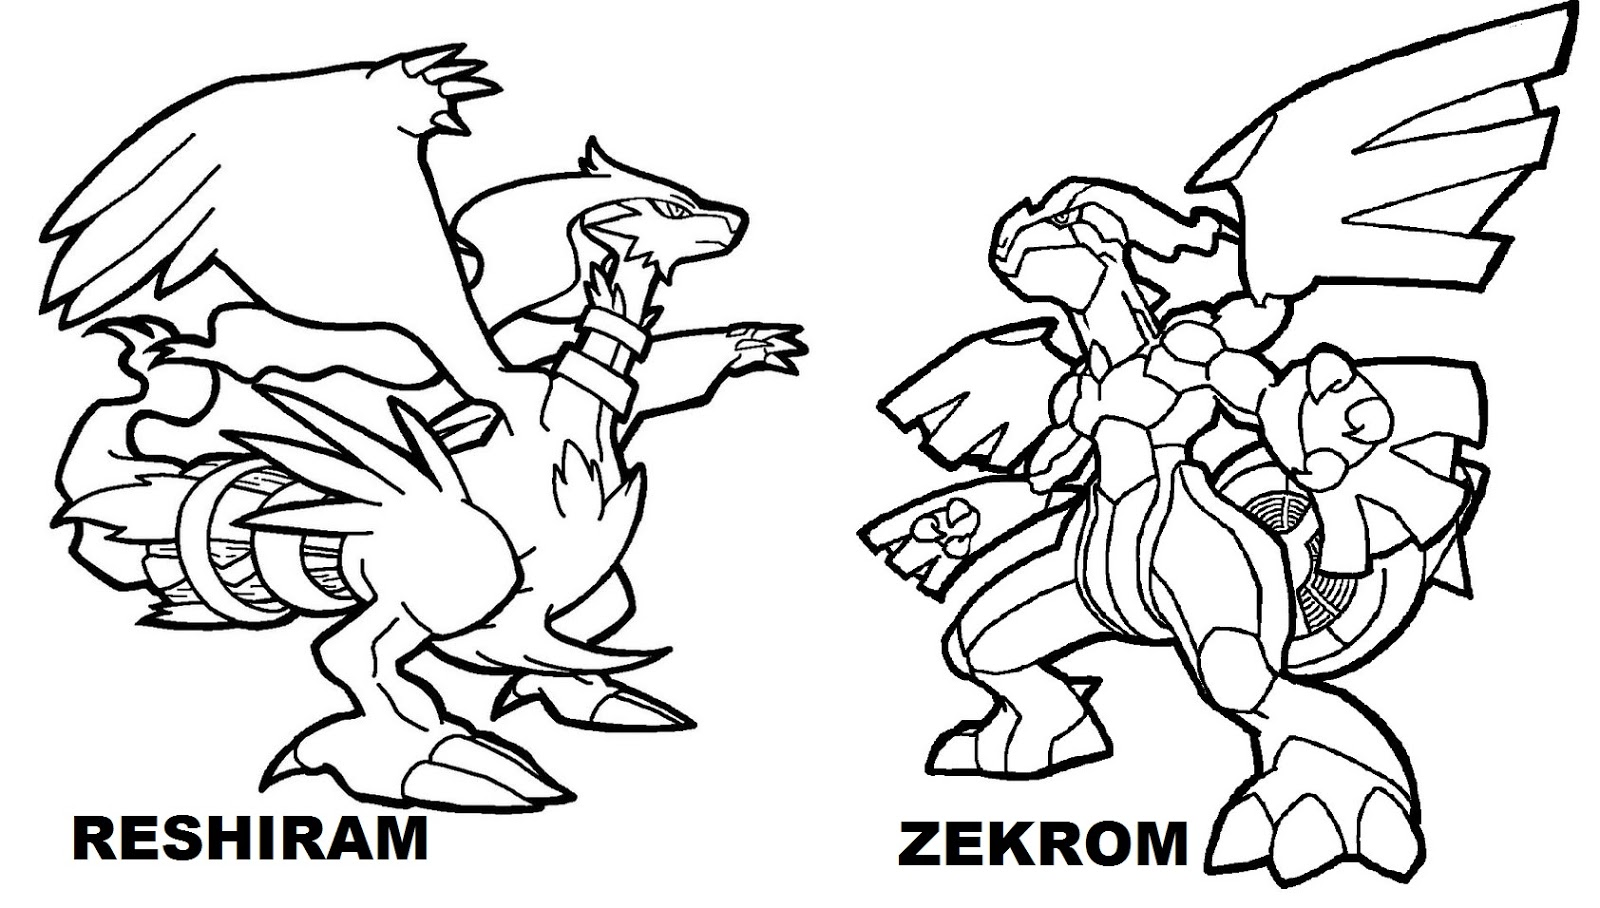 Lovely Zekrom Vs Reshiram Legendary Pokemon Coloring Pages Amazing Pictures